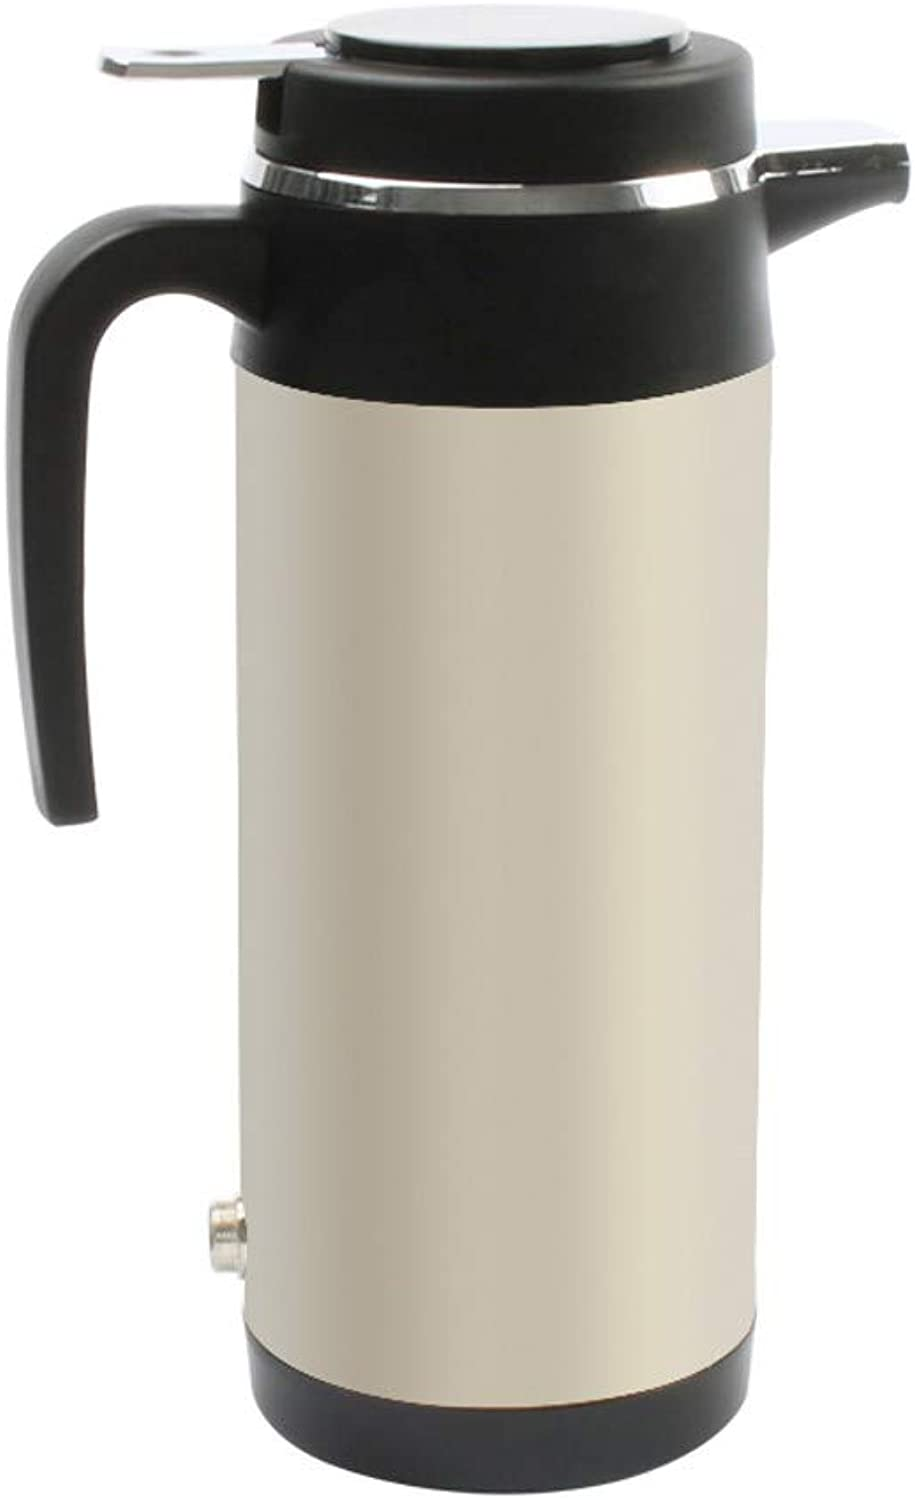 VBNM Thermos 12V 24V Vehicle Hot Water Boiling Electric Kettle voyage Truck Thermal Insulation Heating Cup voiture Teapot Boiler Bottle 1.2L,A